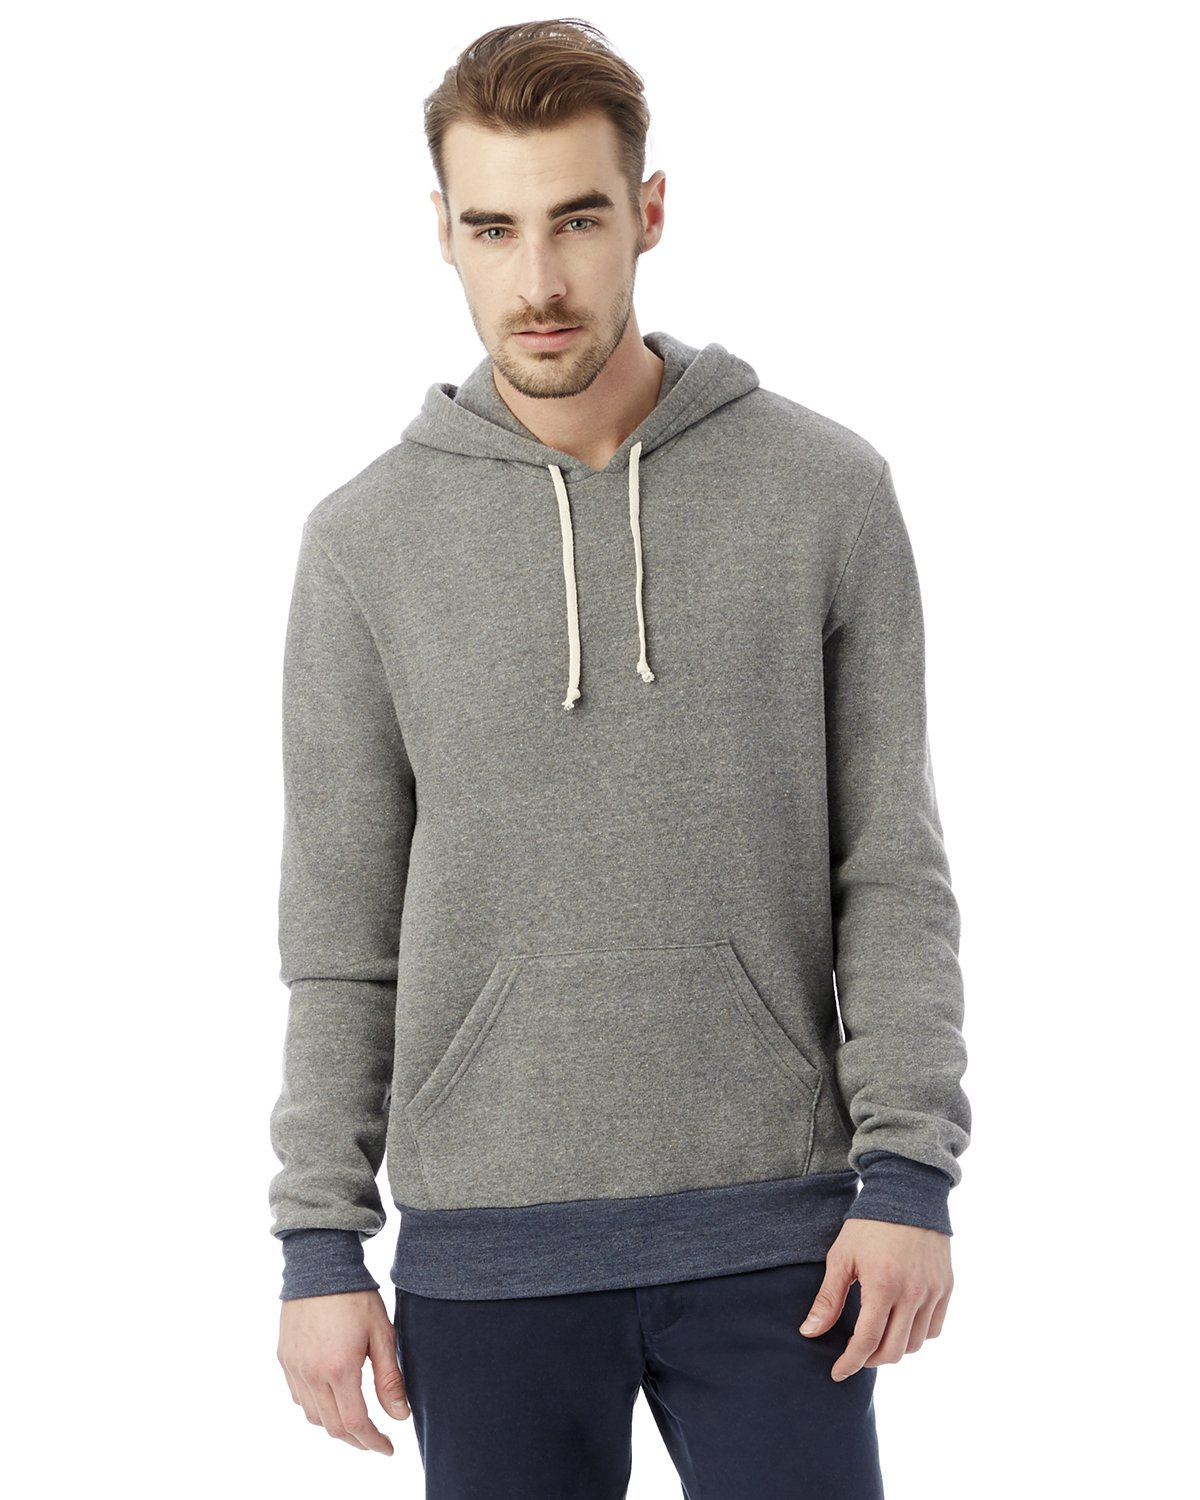 Alternative Apparel - 09595F2 - Men's Challenger Eco-Fleece Hoodie